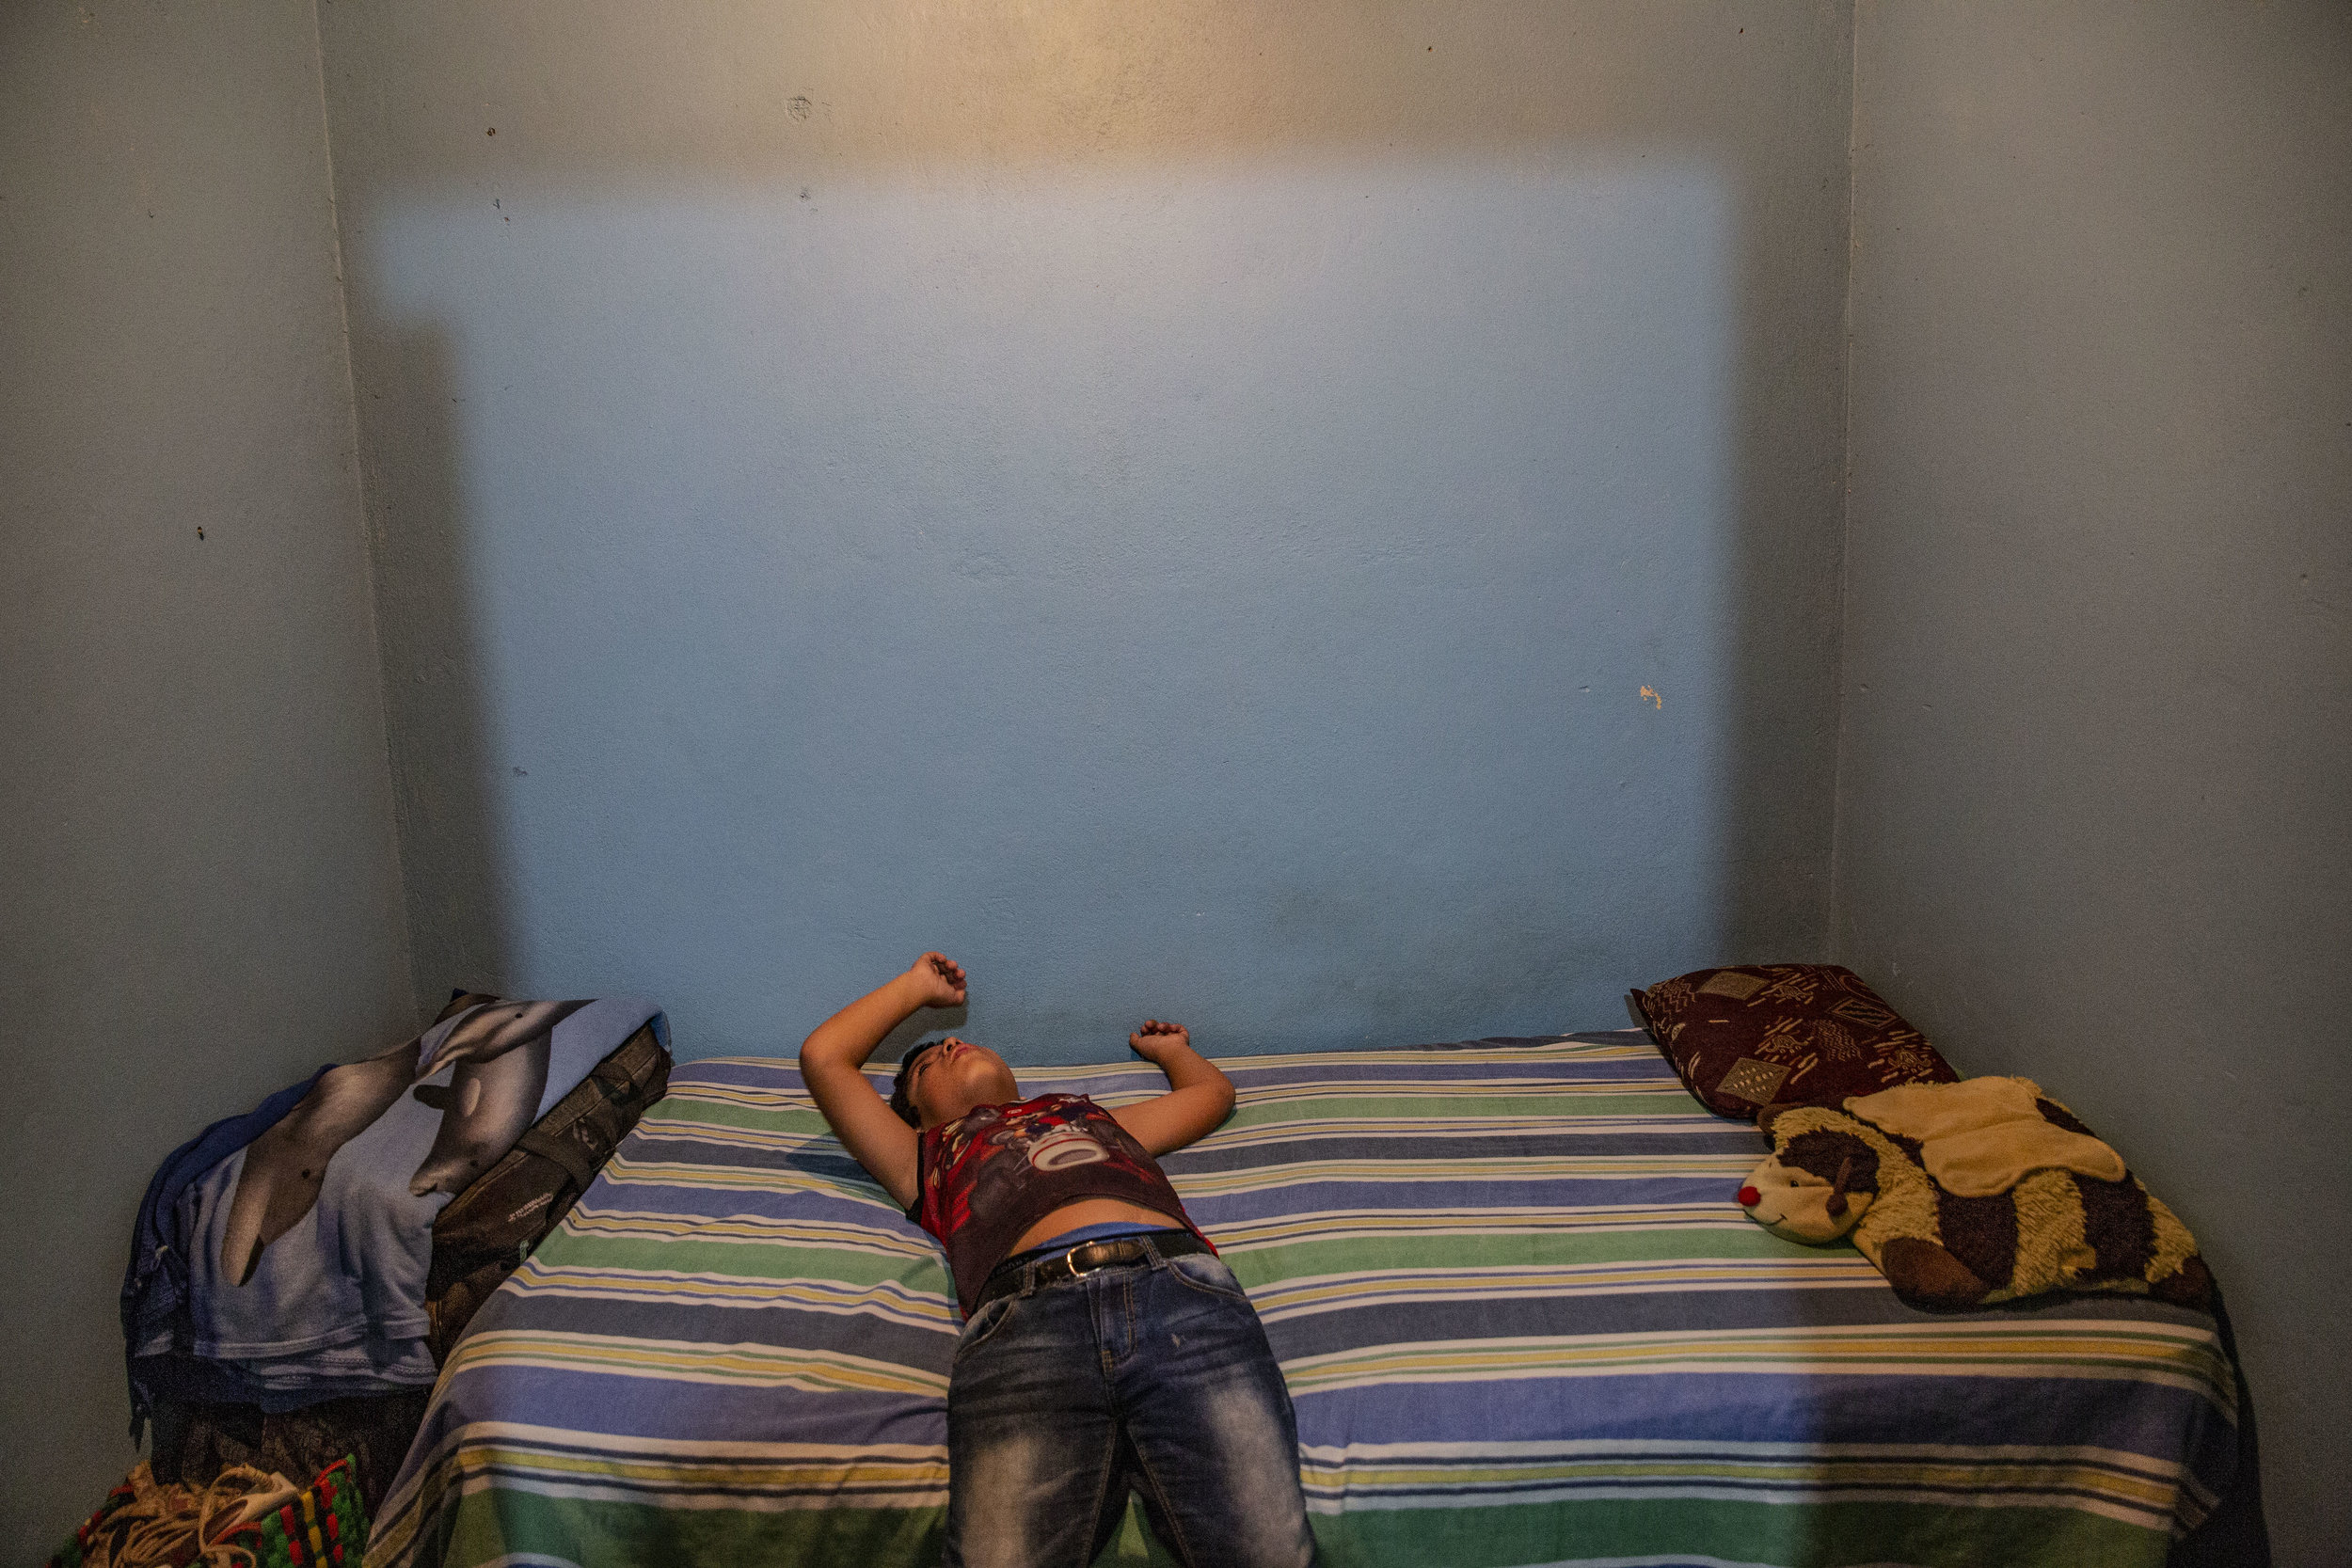 Jose Danilo Ramos is 10 and was born with anorectal malformation. He had multiple operations at the Ruth Paz hospital, here in his bed in his home where he lives with his family in San Pedro Sula, Honduras.